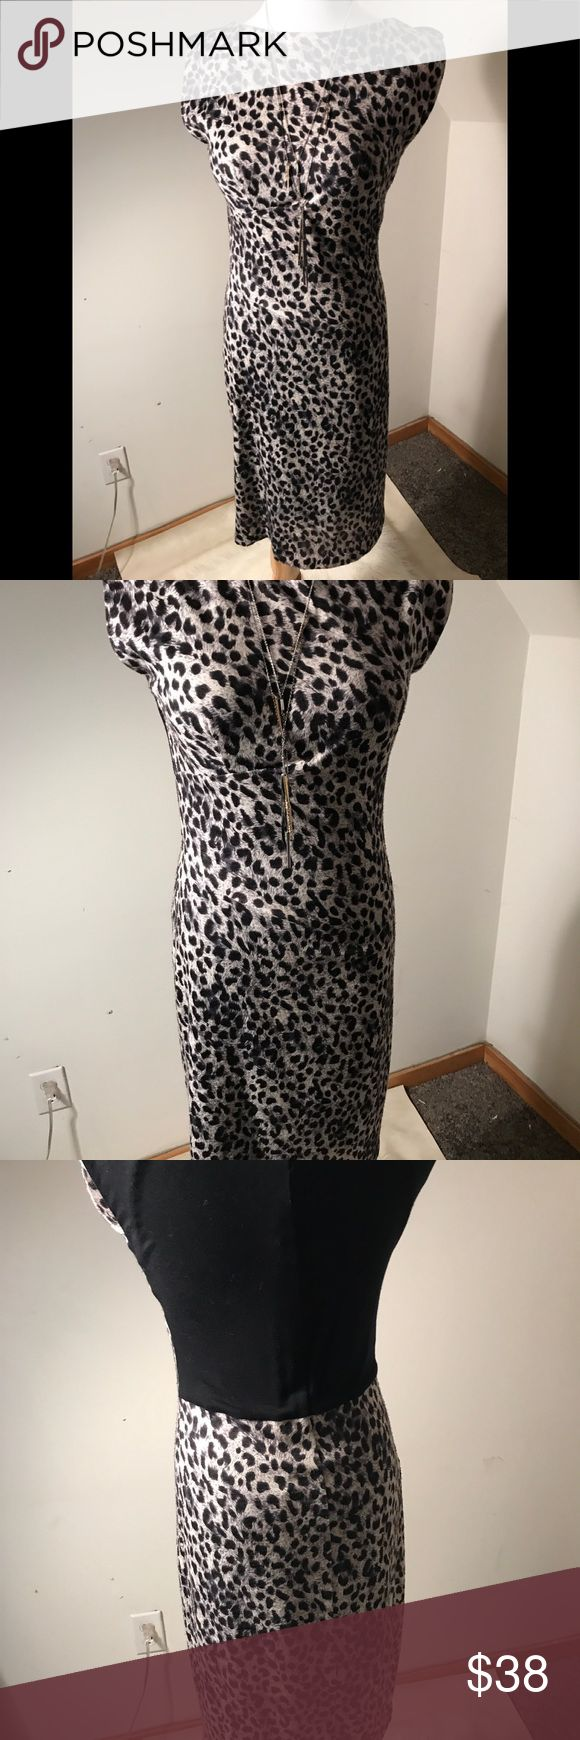 """Rebecca Taylor cheetah dress Rebecca Taylor sexy wear to work  cheetah dress. Approximate Dimensions are 35"""" Length, 33-34"""" Chest....the knit Fabric has some stretch & give & a Full mesh lining.  Some strategically placed darting/shirring on right side that helps hide tummy.  Very good condition w/ one minor flaw... about a 3-4"""" spot in hem that needs tacking- see last pic. Rebecca Taylor Dresses"""